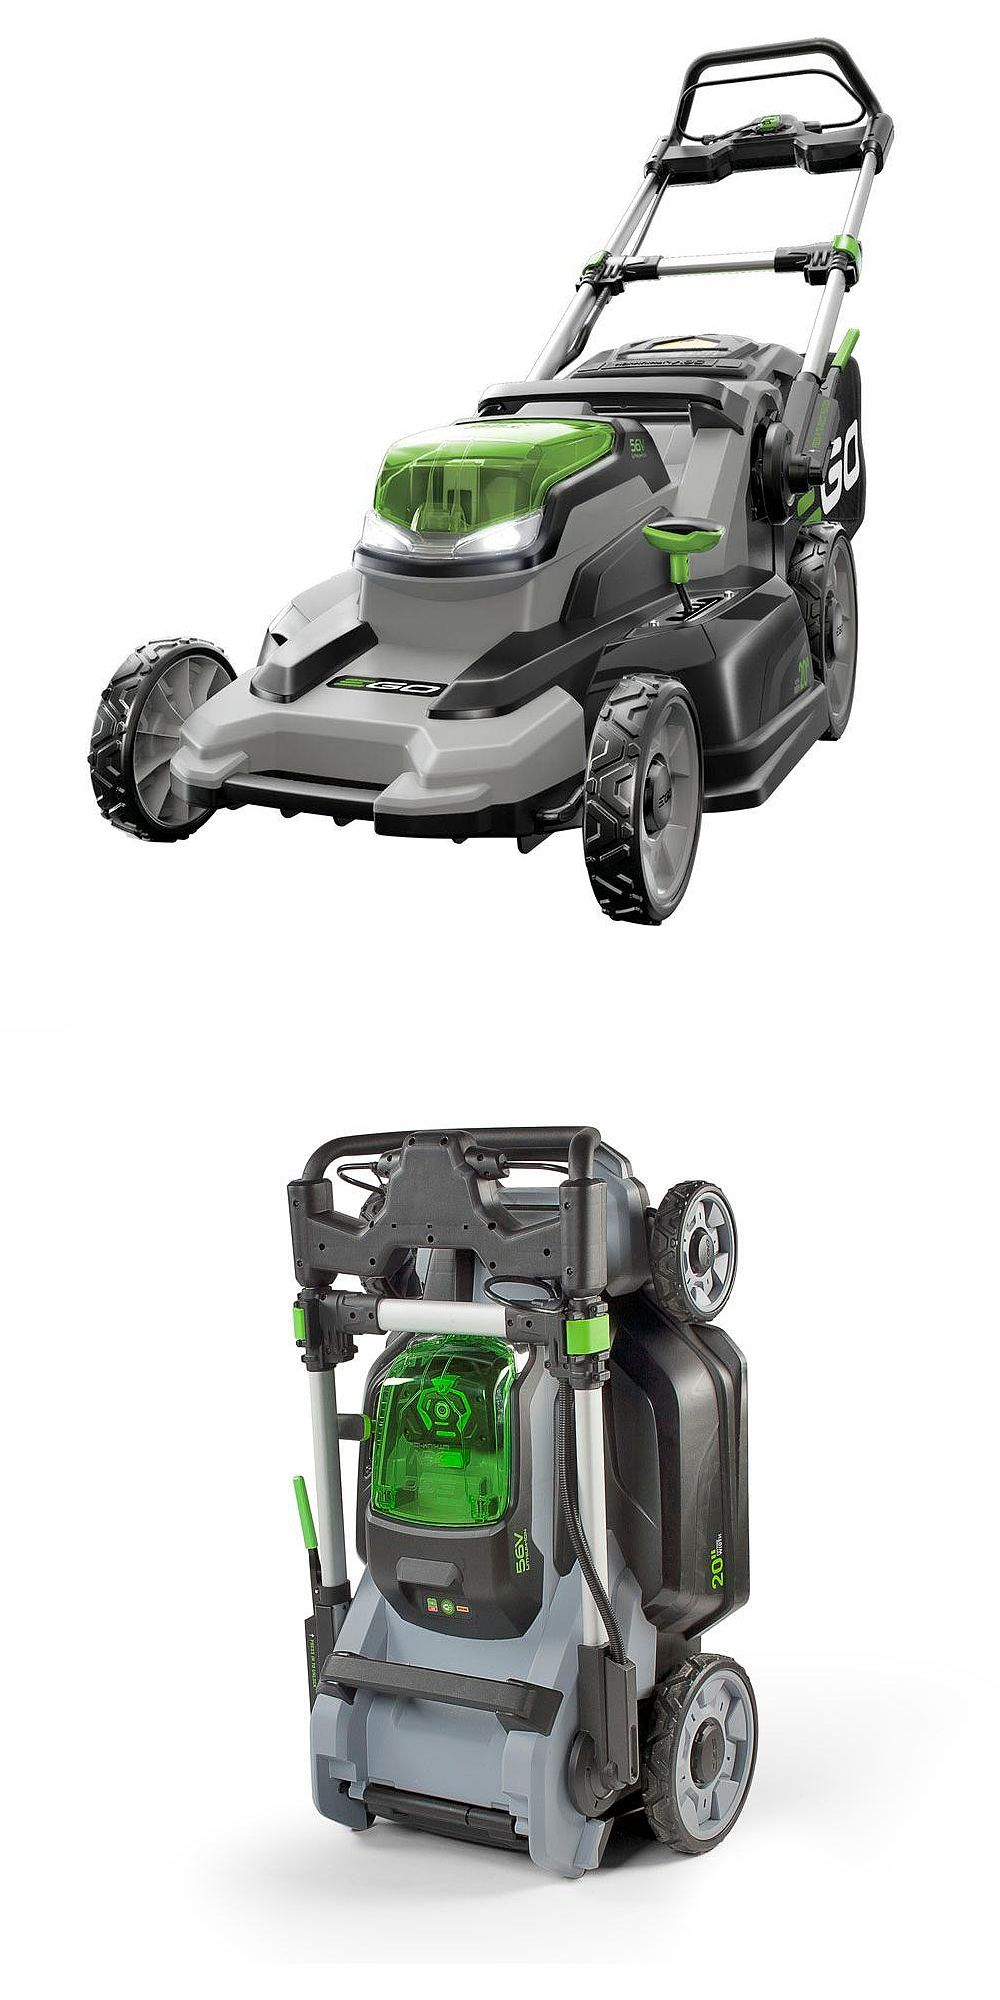 This Is The Most Powerful Rechargeable Mower On The Market And The First To Match Or Surpass The Perf Battery Powered Lawn Mower Lawn Mower Cordless Lawn Mower